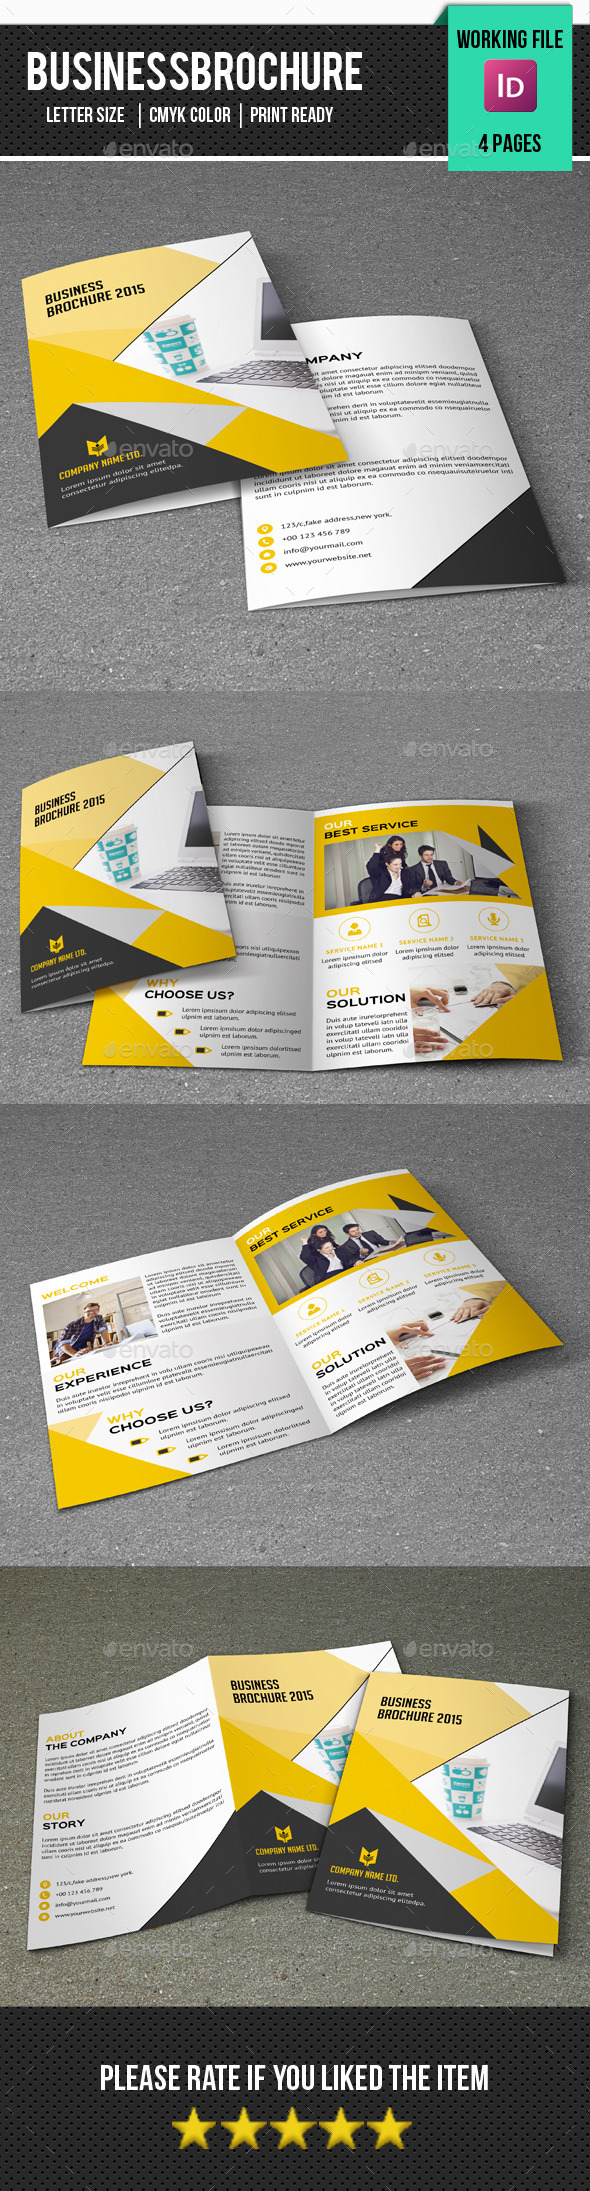 Corporate Bifold Brochure-V283